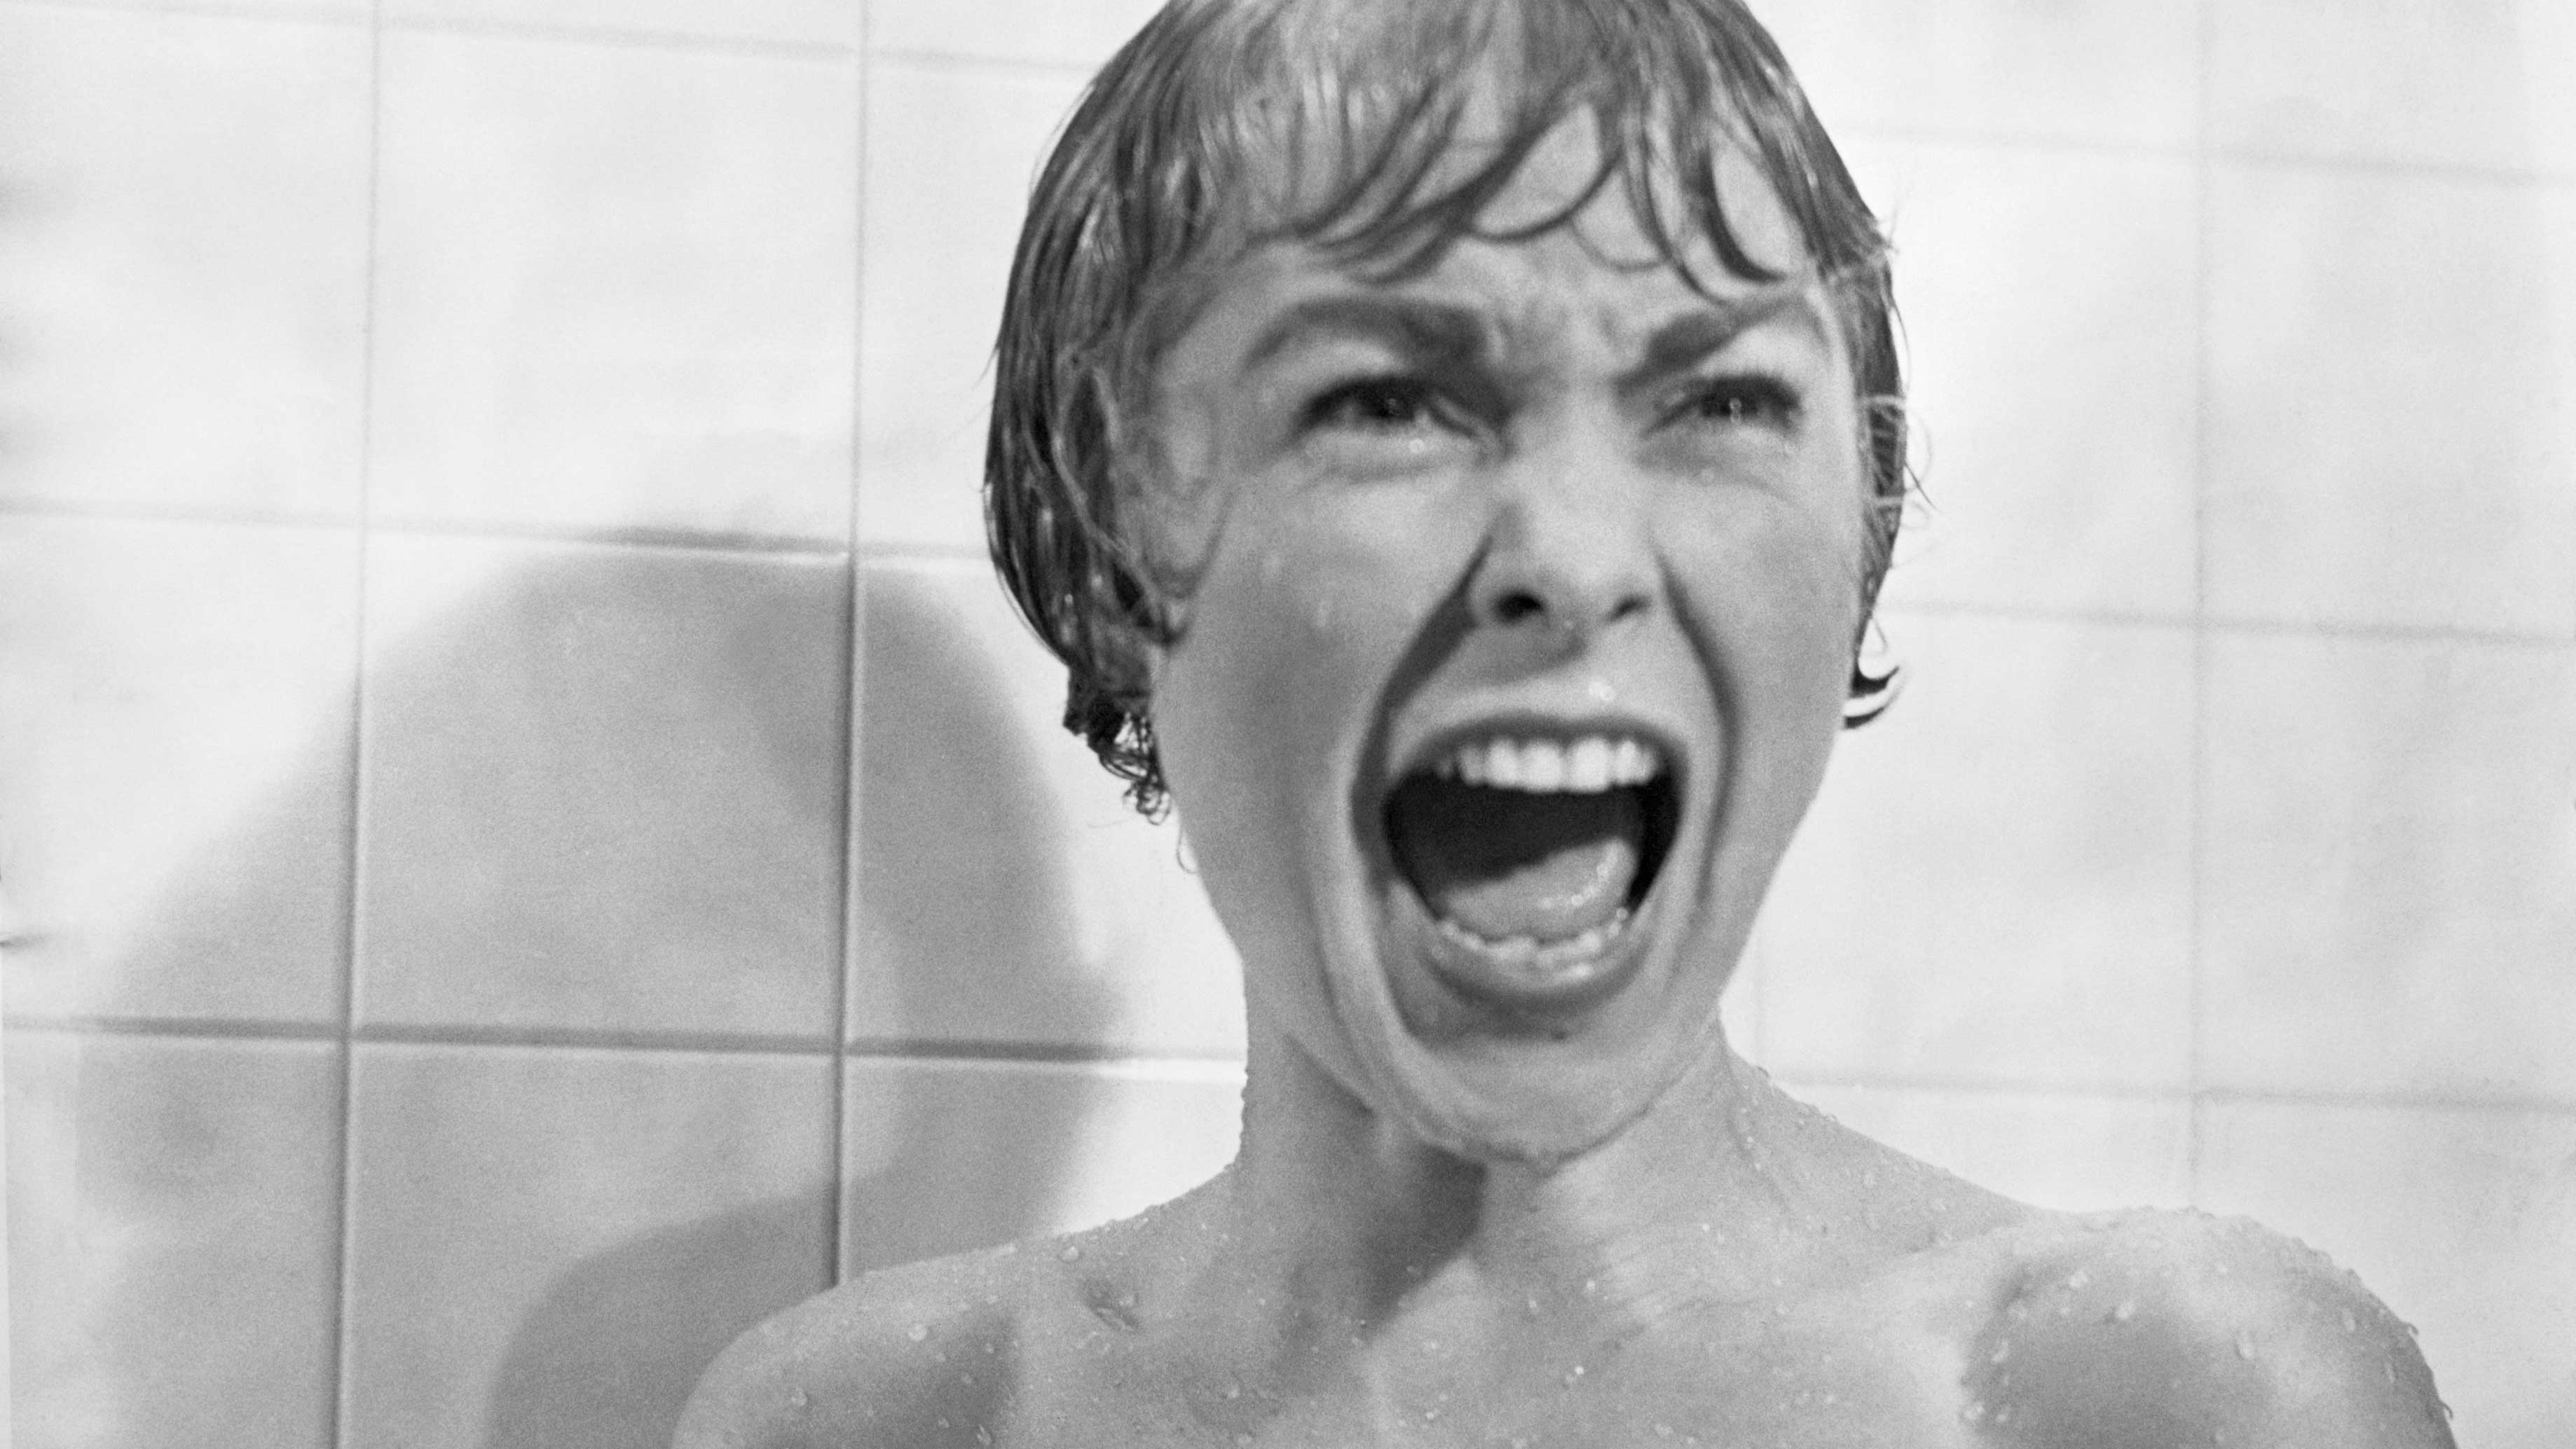 Janet Leigh's iconic scream in Psycho